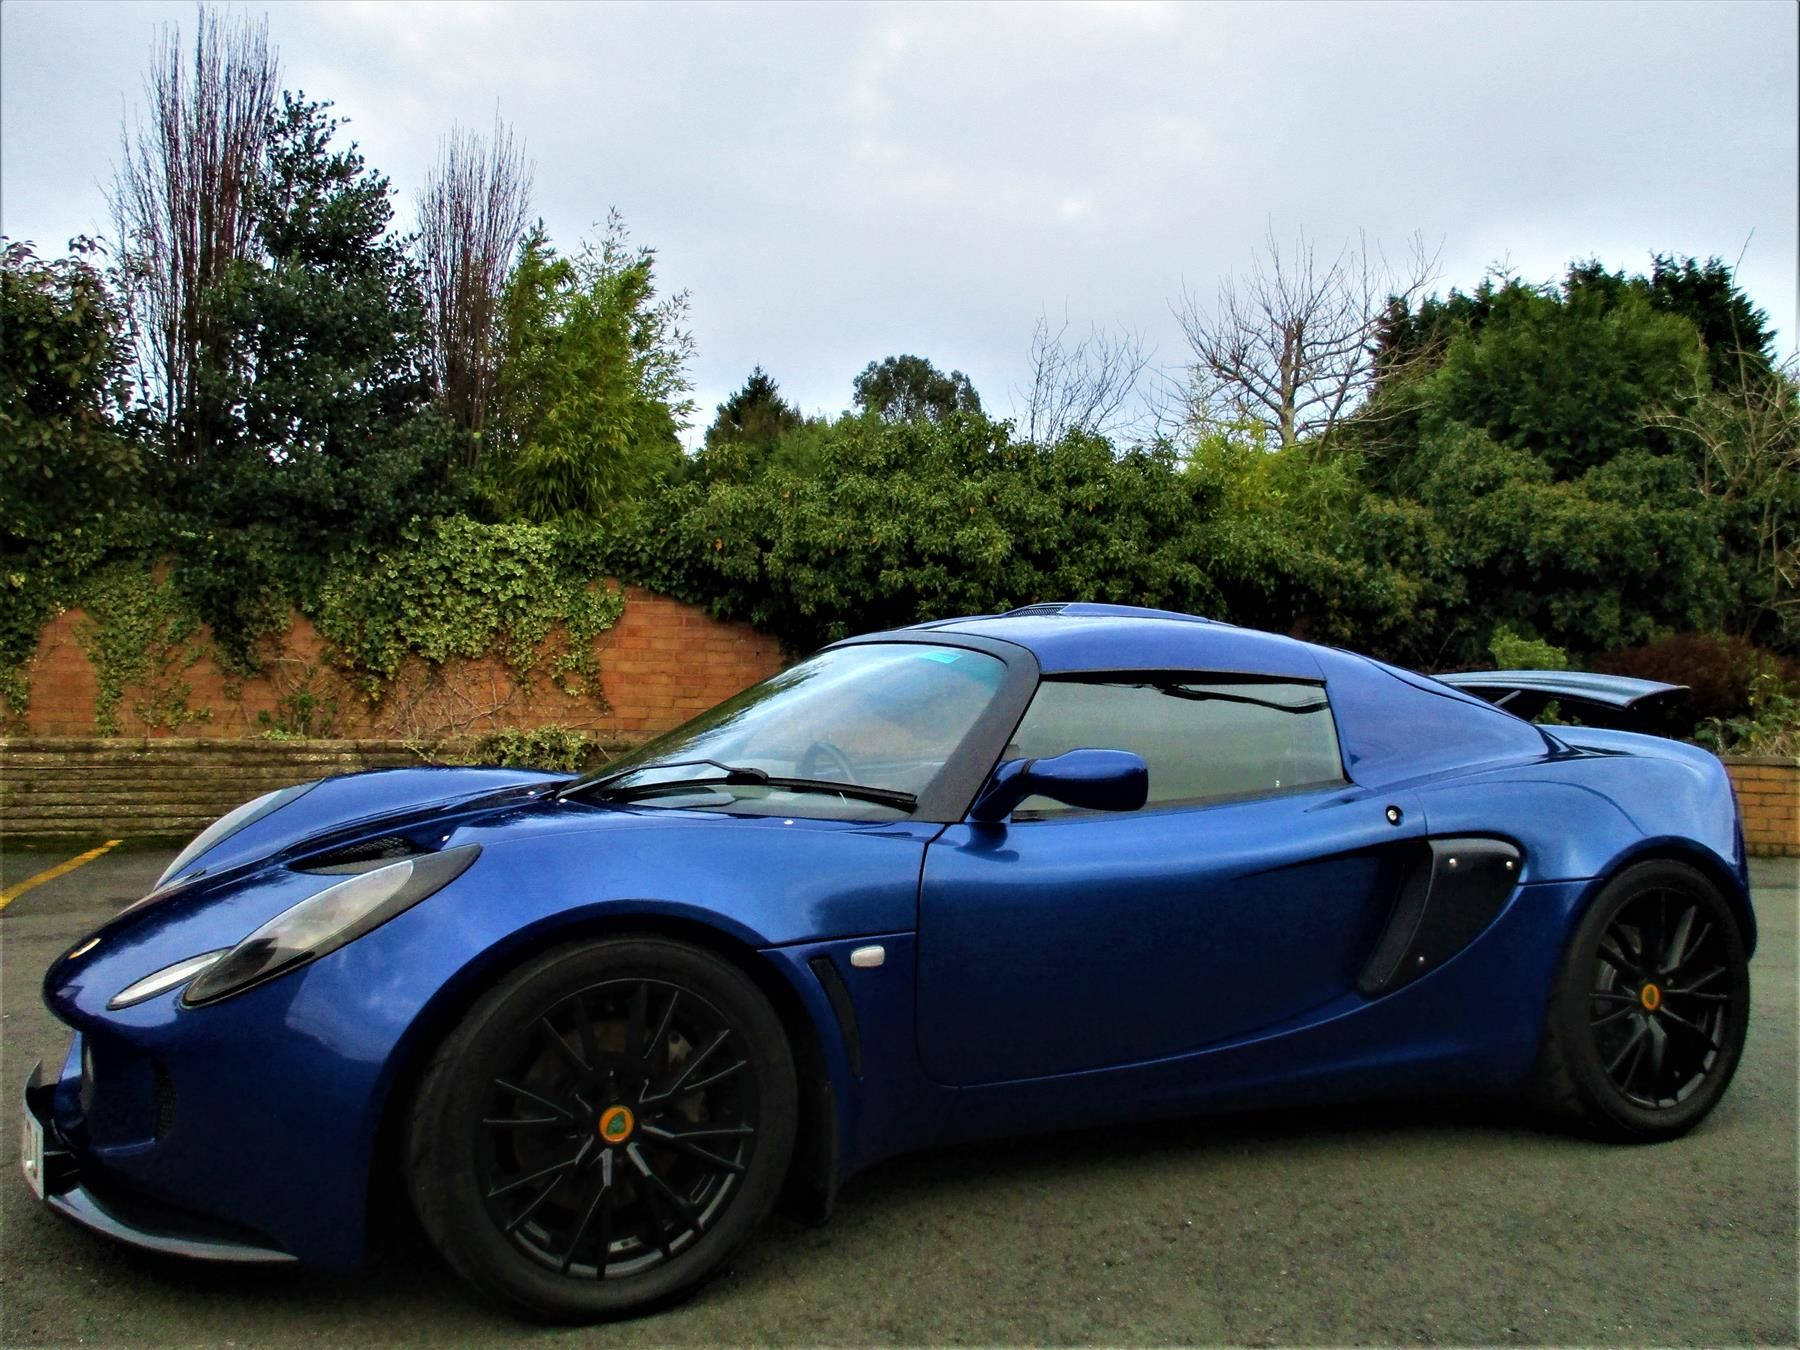 Used 2006 Lotus Exige S2 16v Touring For Sale In Worcestershire